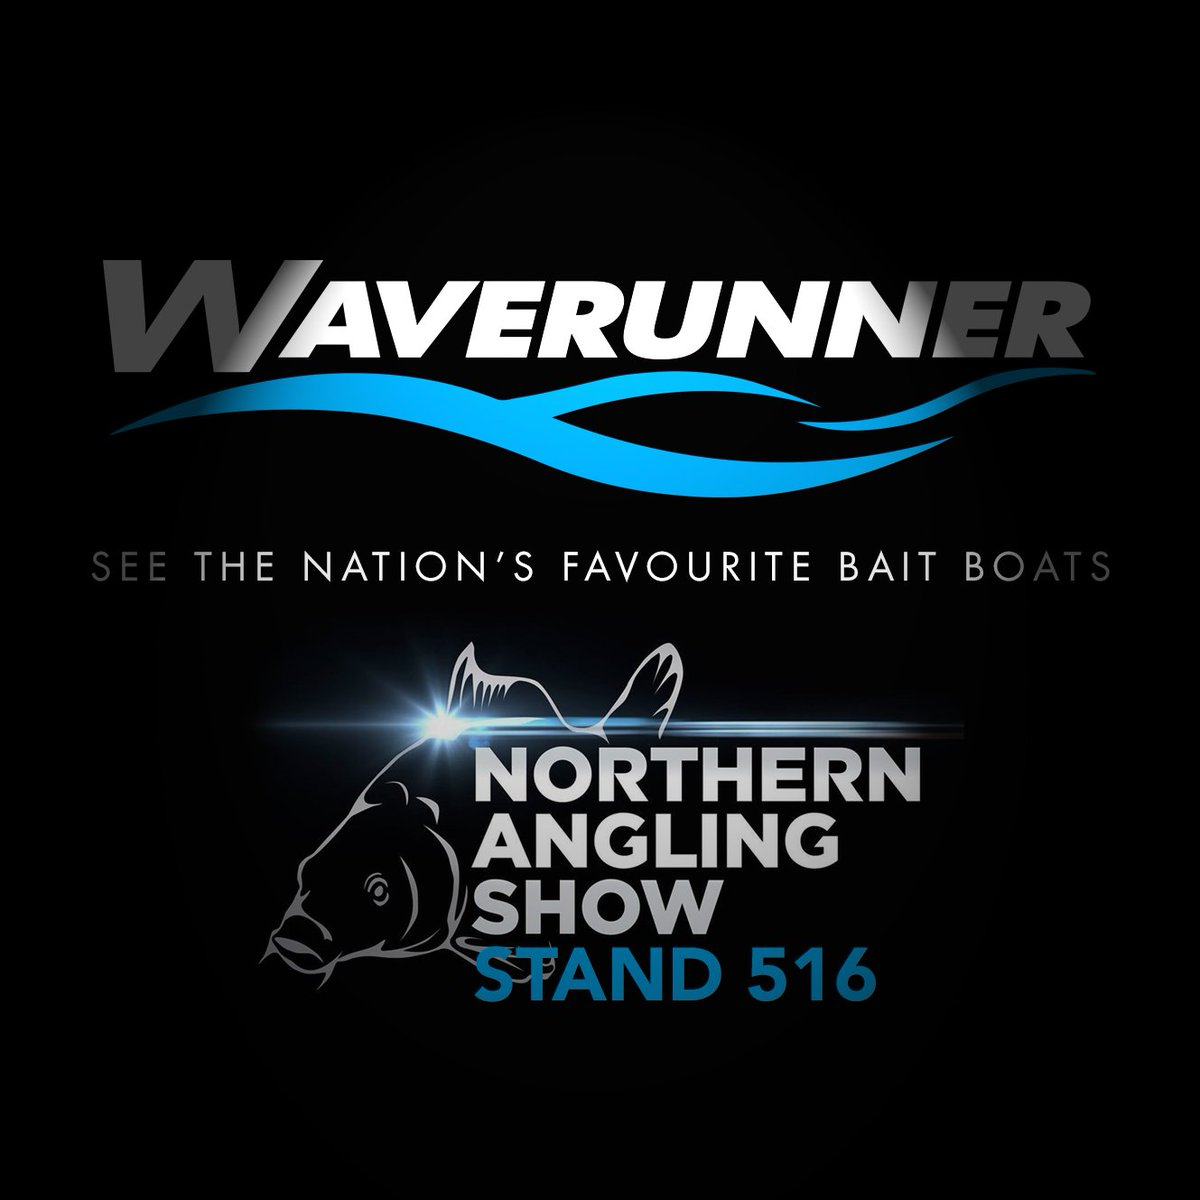 Come over and see us! #NAS #Northern #<b>Baitboat</b> #carpfishing #waverunner https://t.co/zWeAG7a4